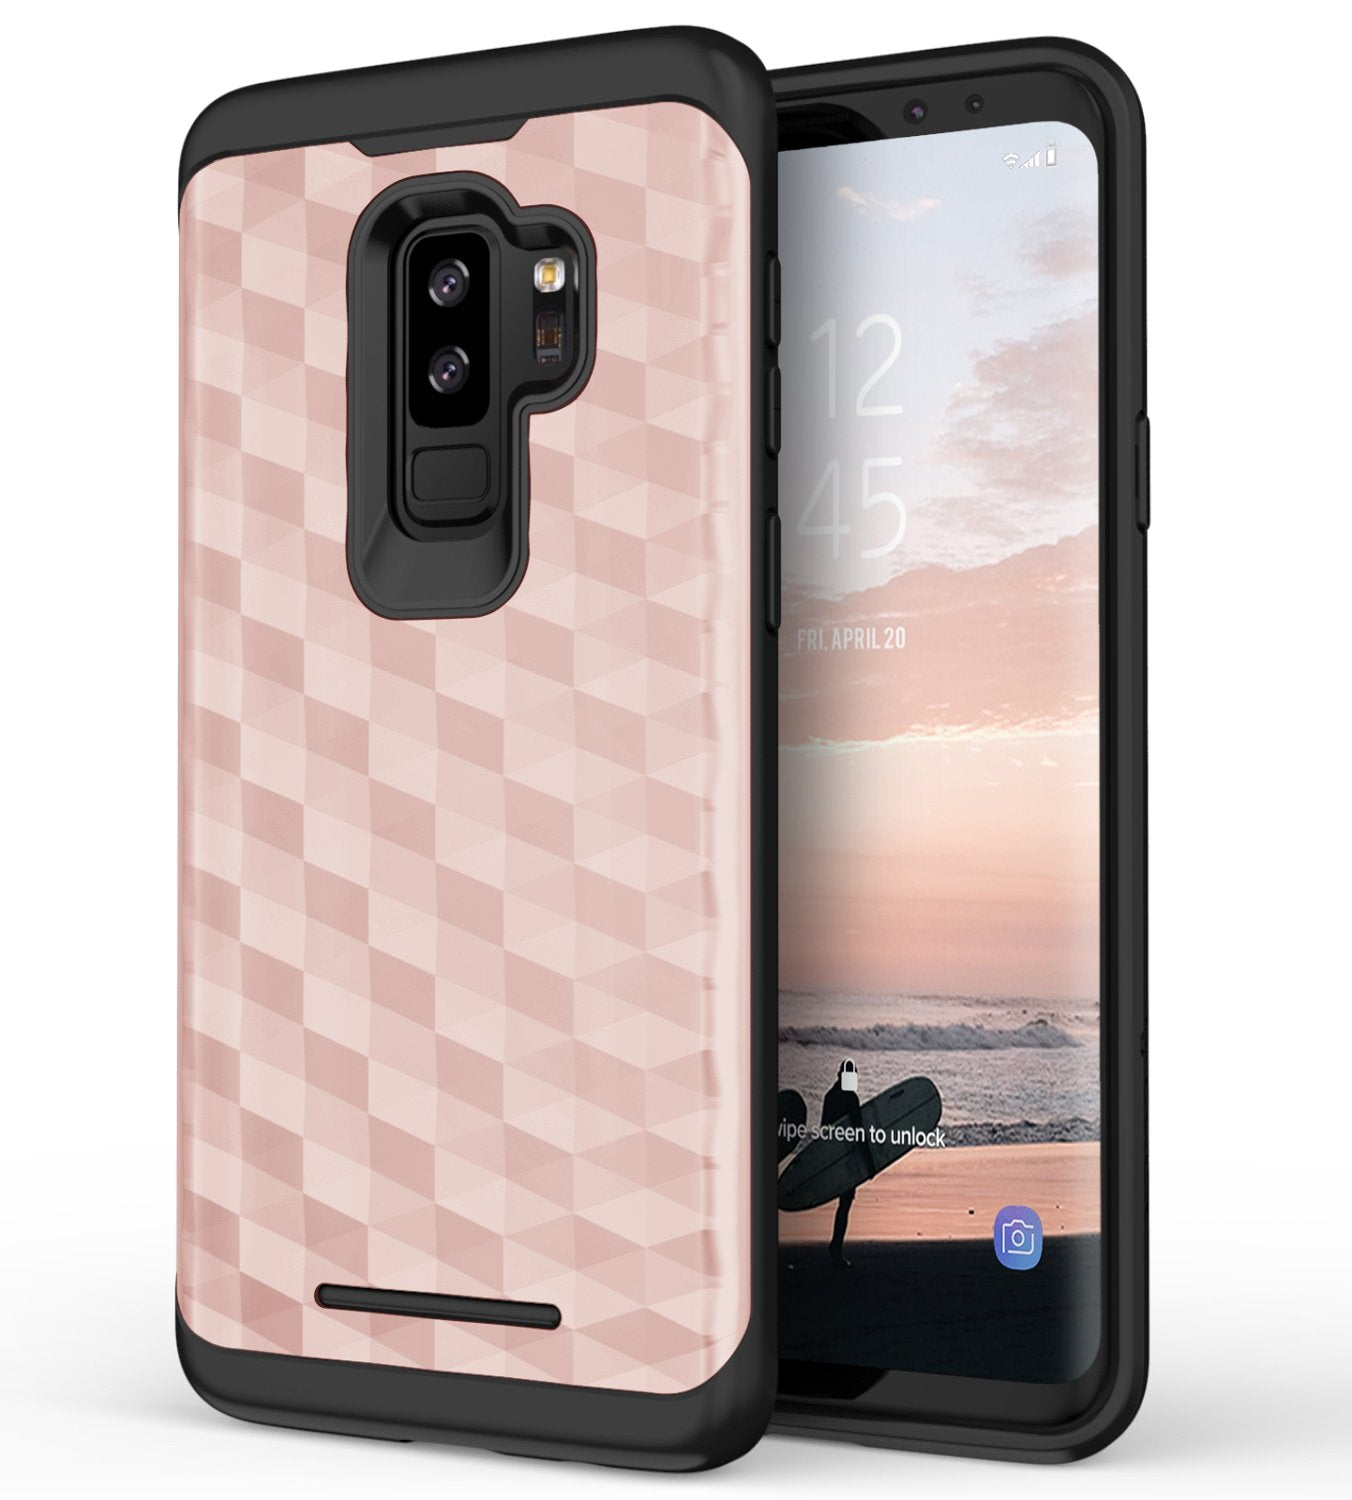 Shockproof, Trendy, and Exclusive. These three words define the CLICK [Prism Series]. This AppleSamsung Galaxy S9 Plus case is the perfect way to give your phone the heavy duty protection it needs without adding the heavy-duty bulk. This product features a dual-layer case that is engineered to absorb the shock from all your drops while still exuding that trendy vibe. The [Prism Series] protective case implements [Impact Dispersion Technology] in a soft [Shock Absorbing] Tetra Polyurethane inside and an [Impact Resistant] Poly carbonateShell outside. A slim sleek design allows for the best user experience while still protecting your phone. This case is compatible with the Apple Samsung Galaxy S9 Plus. Our goal is simple: to provide the best value in products available. This Dual Layered Hybrid Cover is designed to protect yourSamsung Galaxy S9 Plus phone. The outer layer for the Prism Series cover is made with a tested Impact Resistant Polycarbonate layer and a Tetra Polyurethane inner